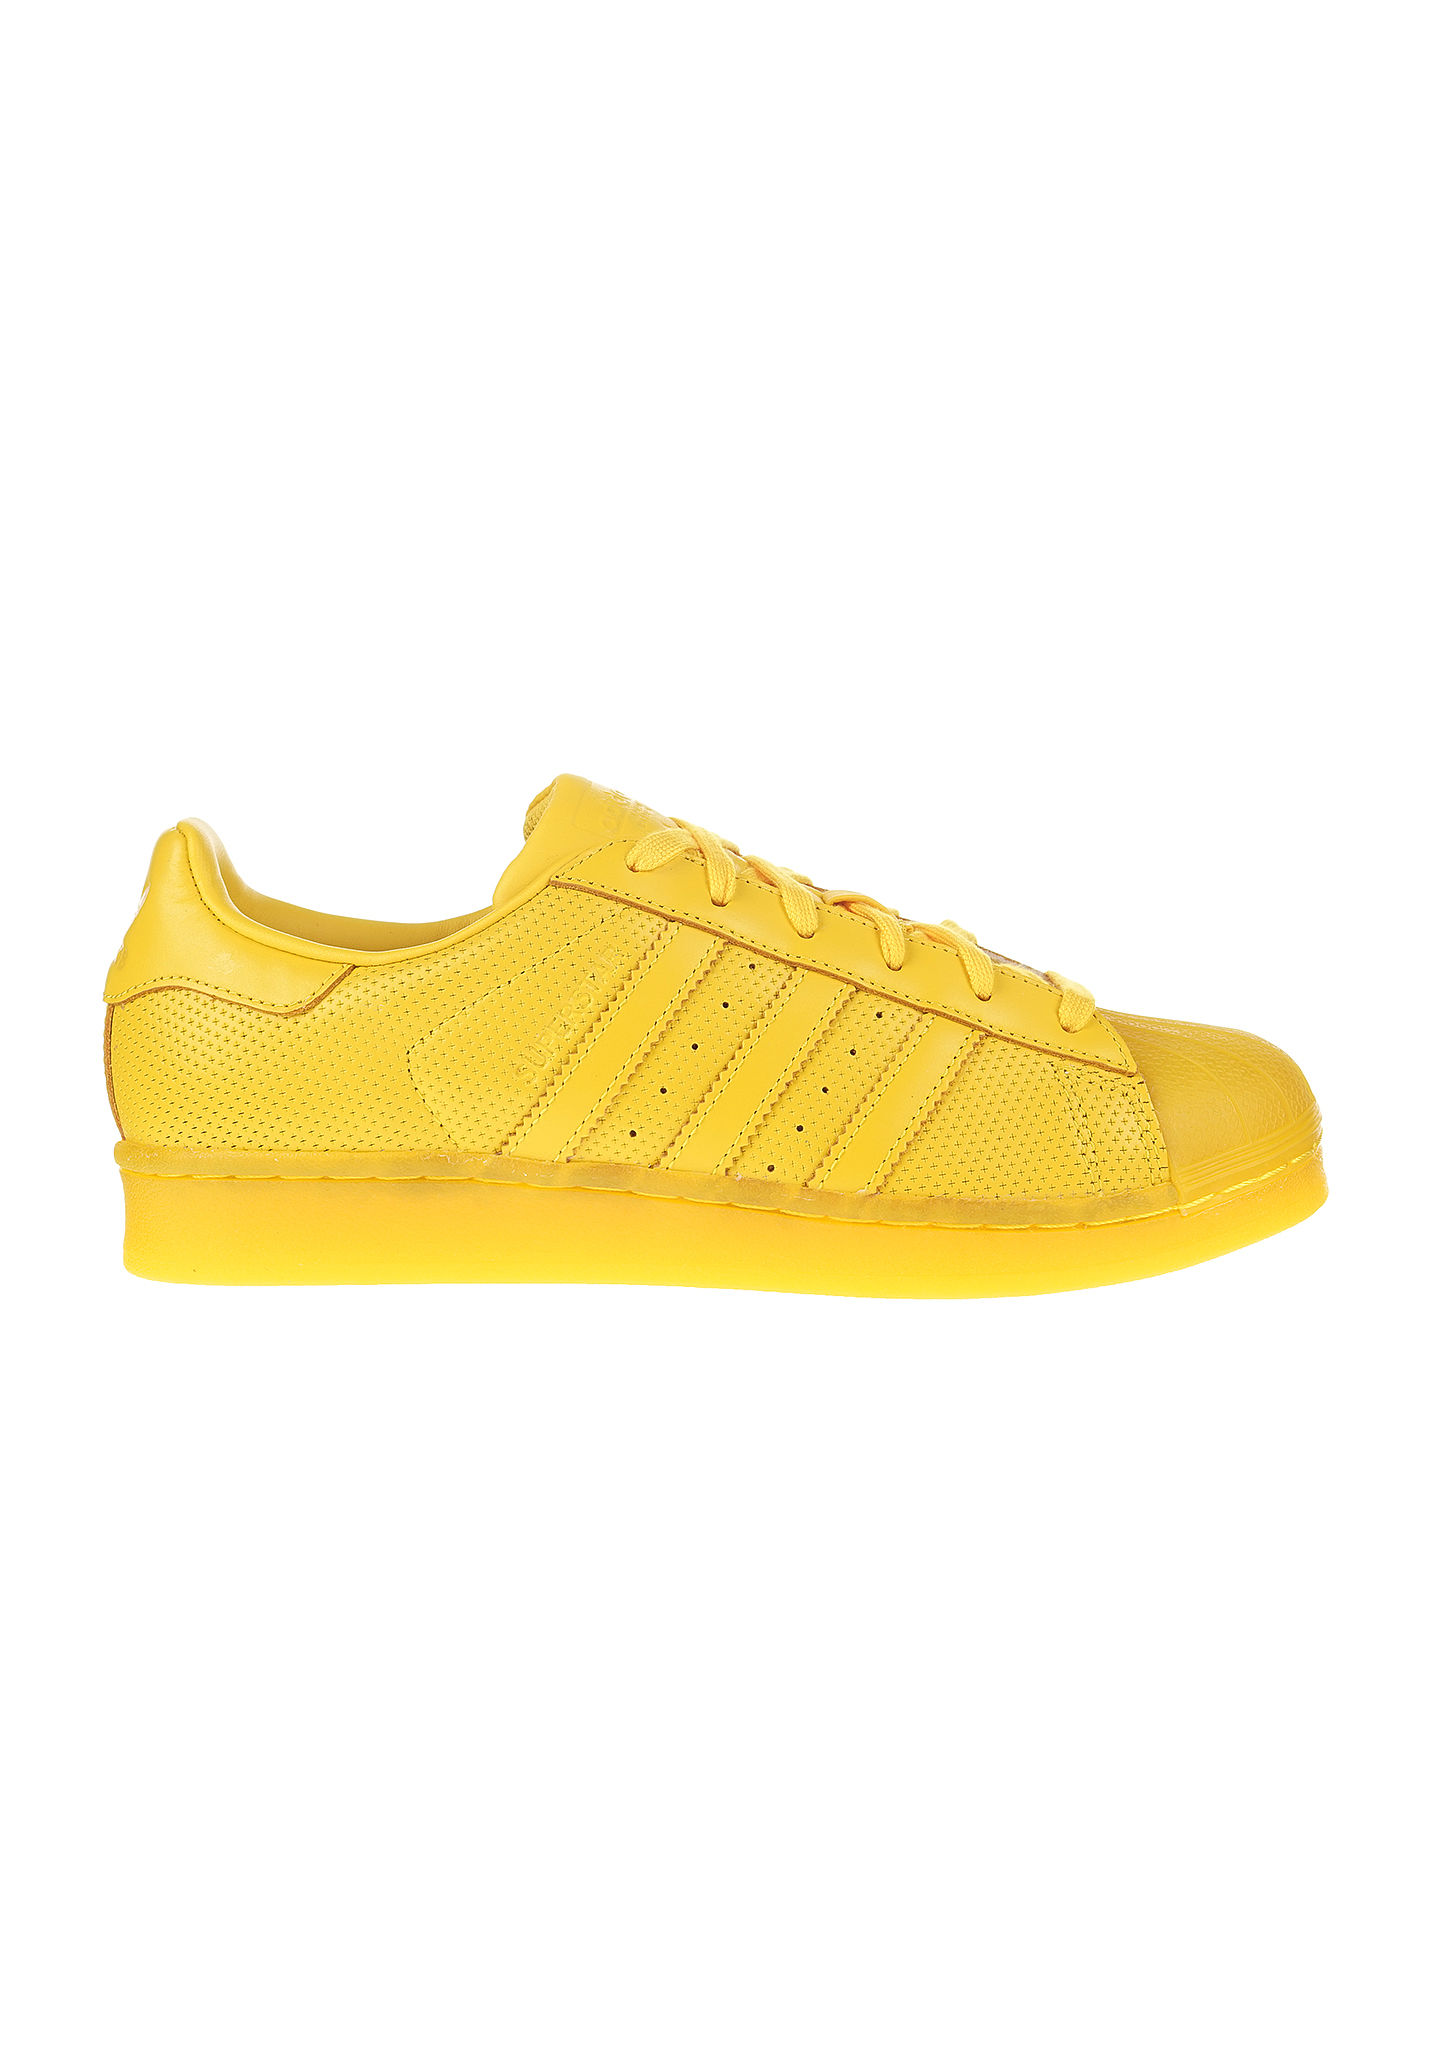 Archive Adidas Superstar II (Preschool) Sneakerhead 104340